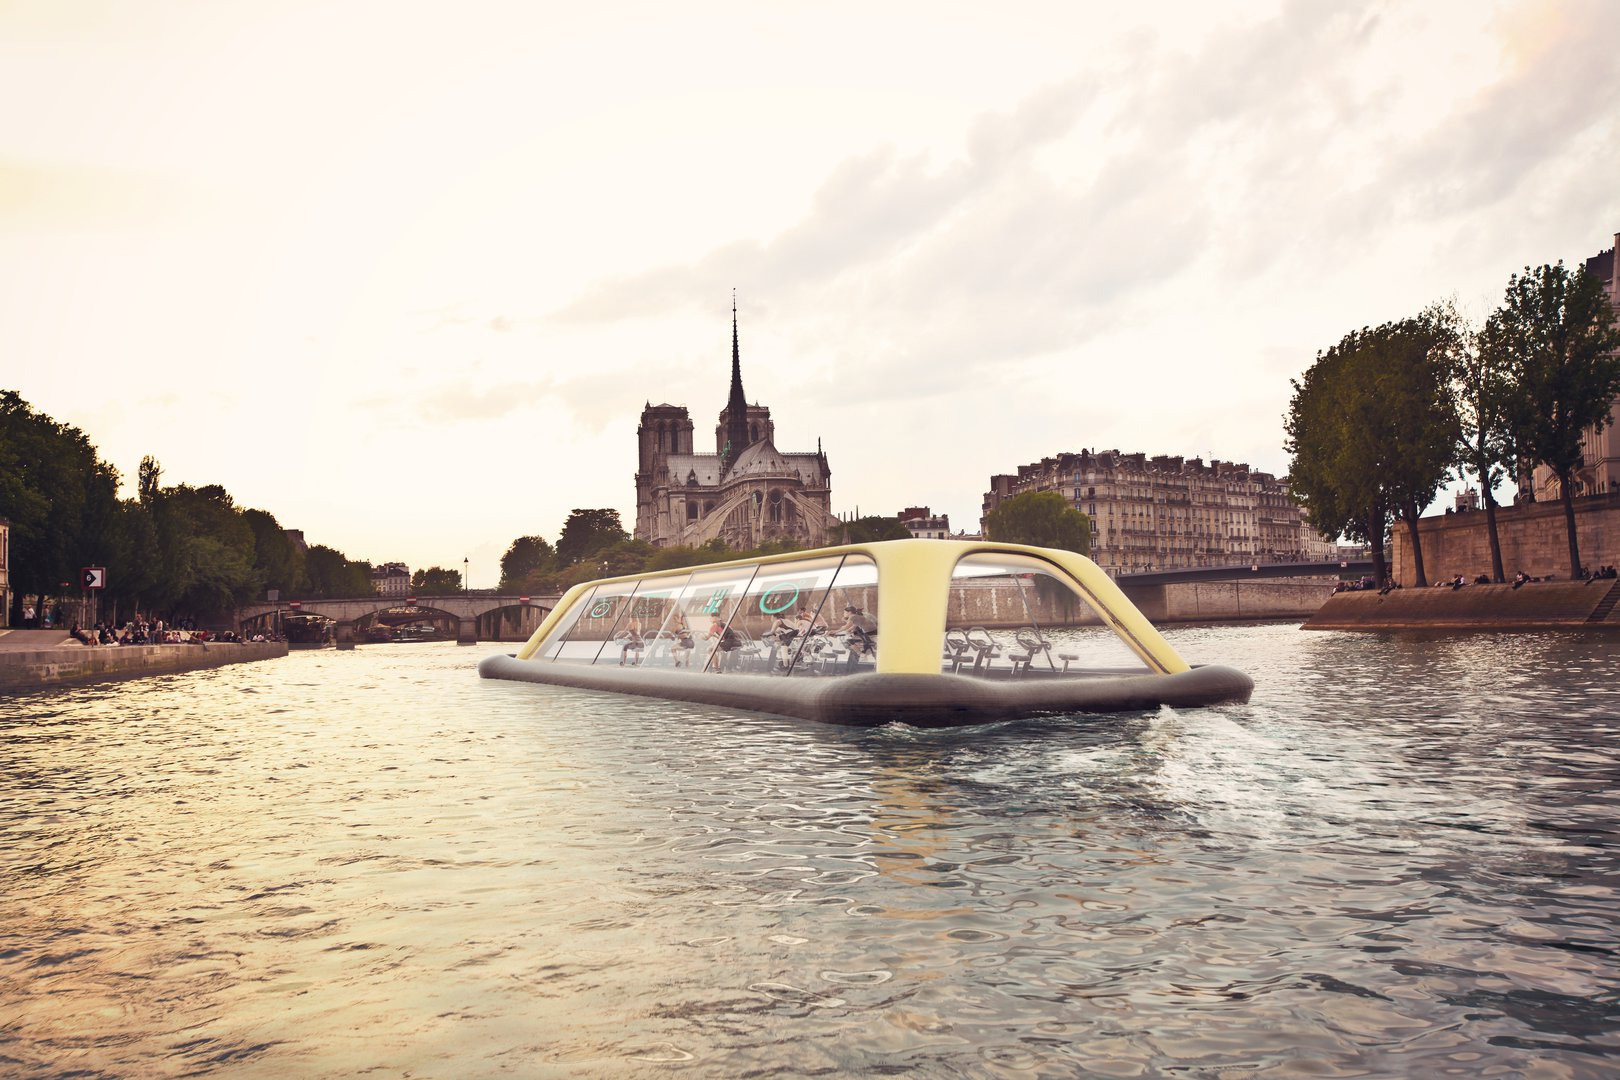 Floating gym will move on the Seine due to the energy of its visitors 14